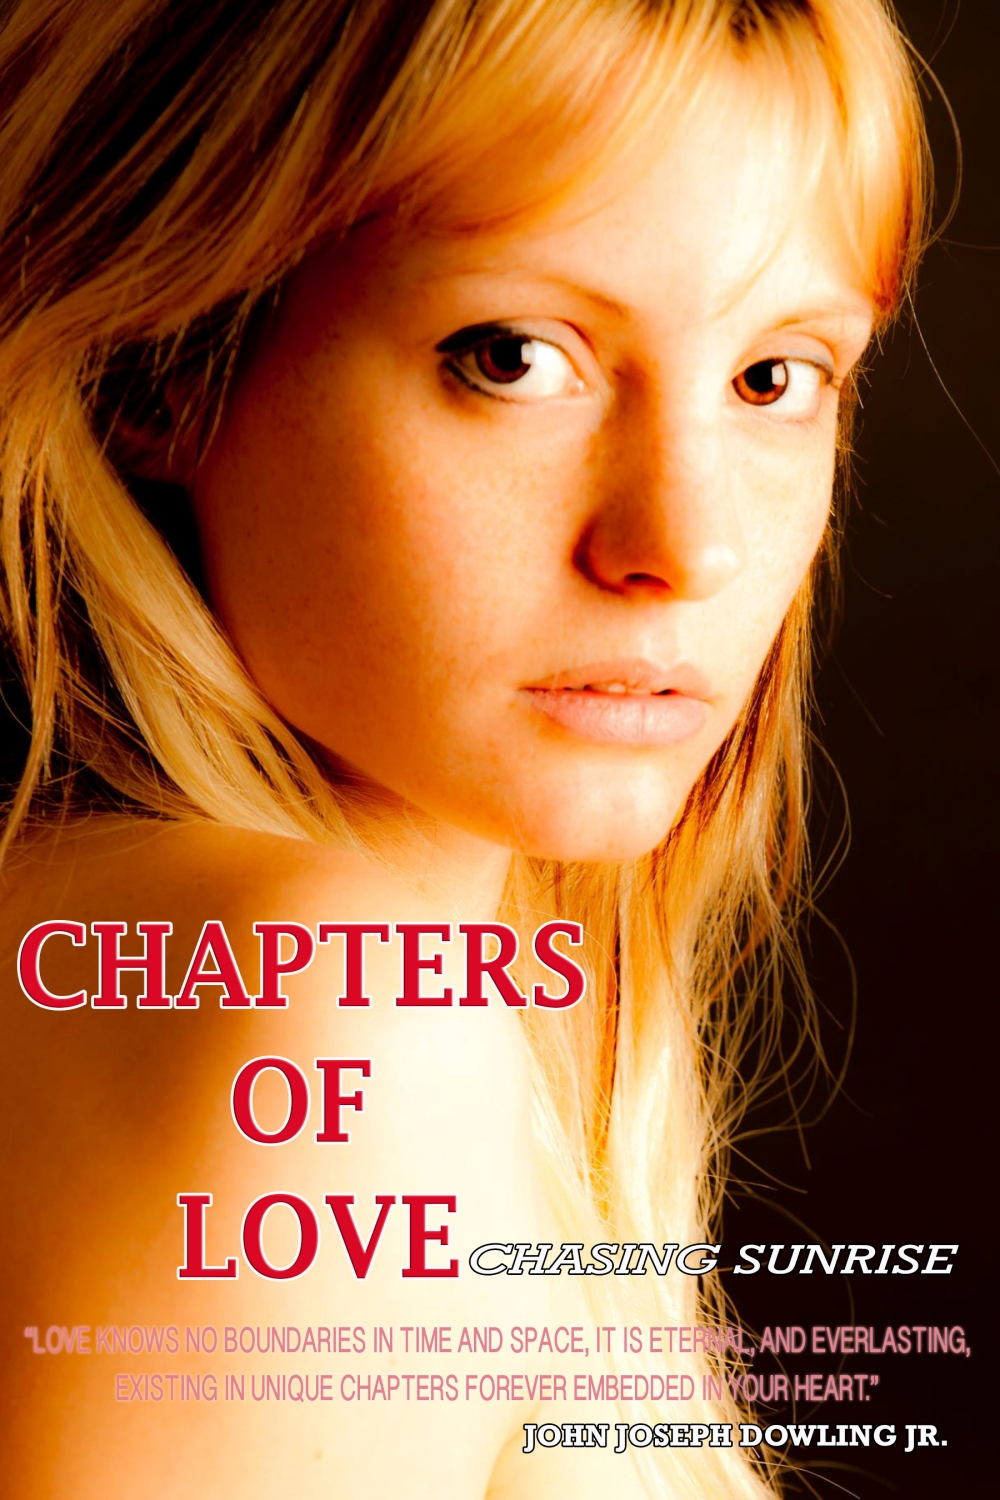 Chapters Of Love HardCover and Paperback Cover 6